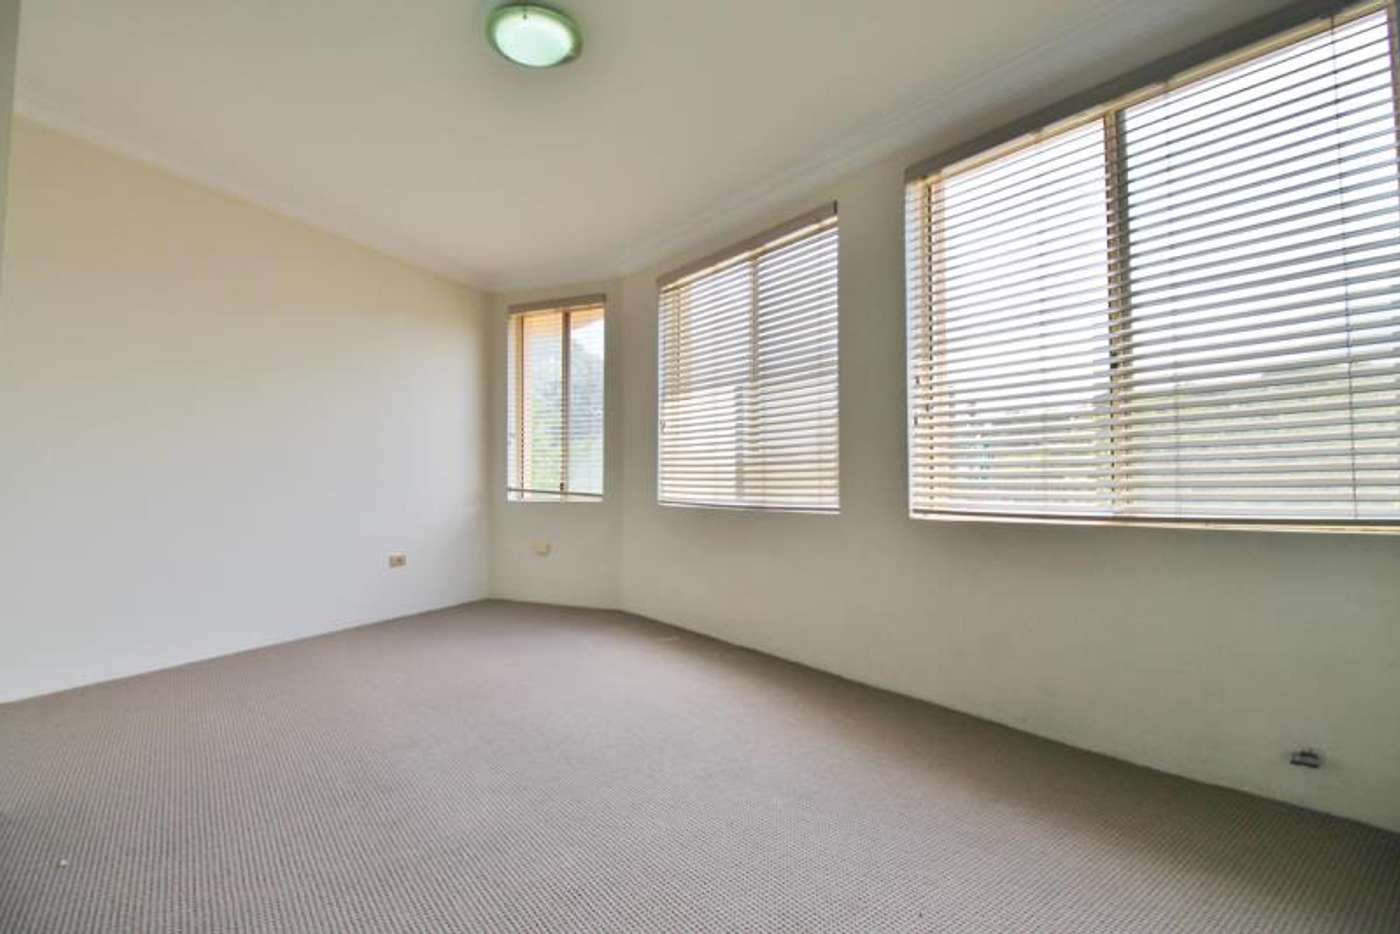 Sixth view of Homely apartment listing, 4/1-3 Tay Street, Kensington NSW 2033